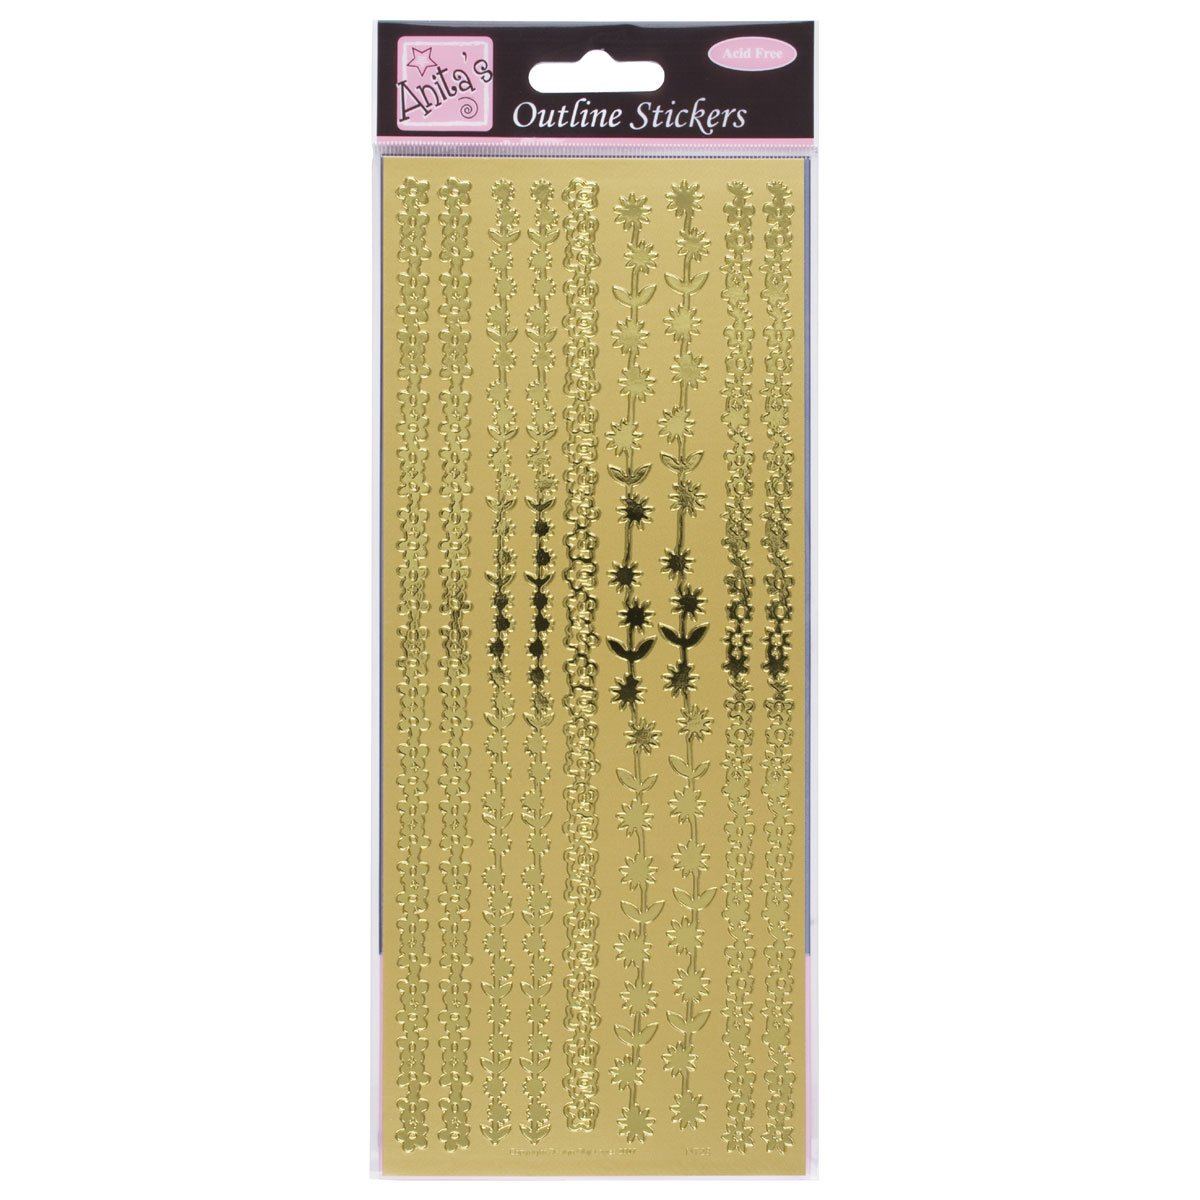 Anitas outline peel off craft stickers - Floral Borders Gold Anita's ANT8101020